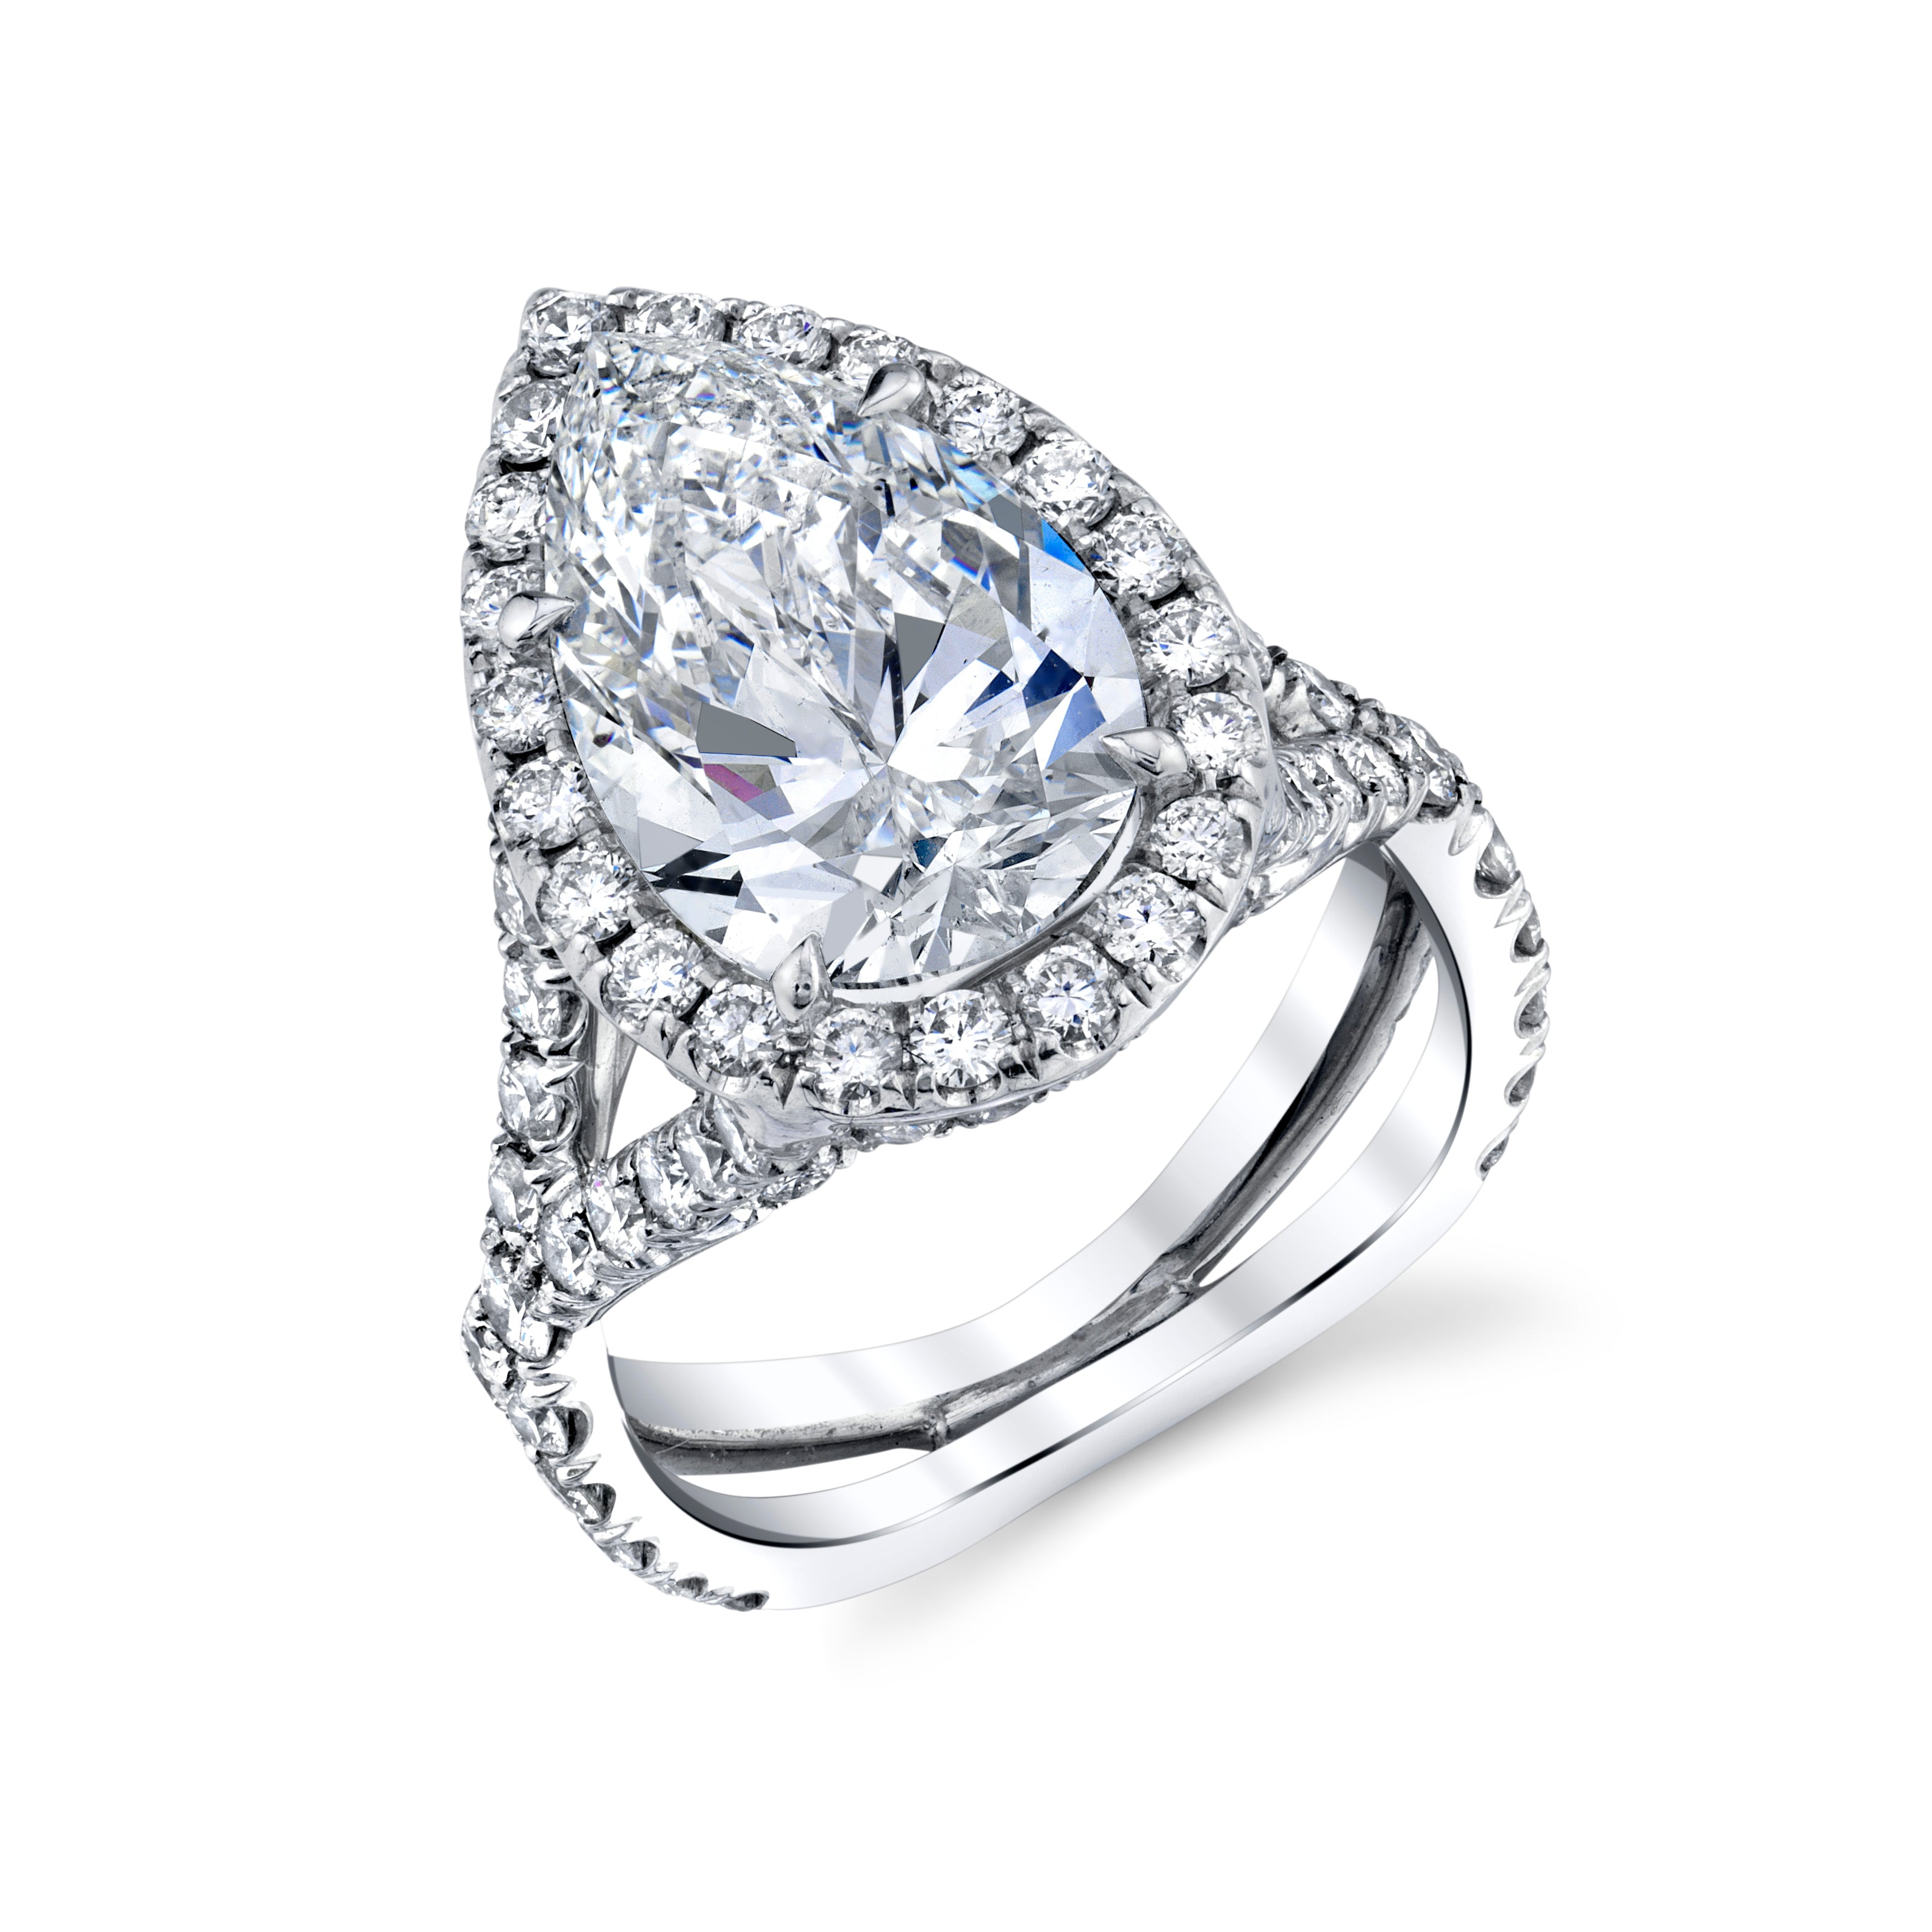 4.01 CT. Pear Shape Diamond Ring